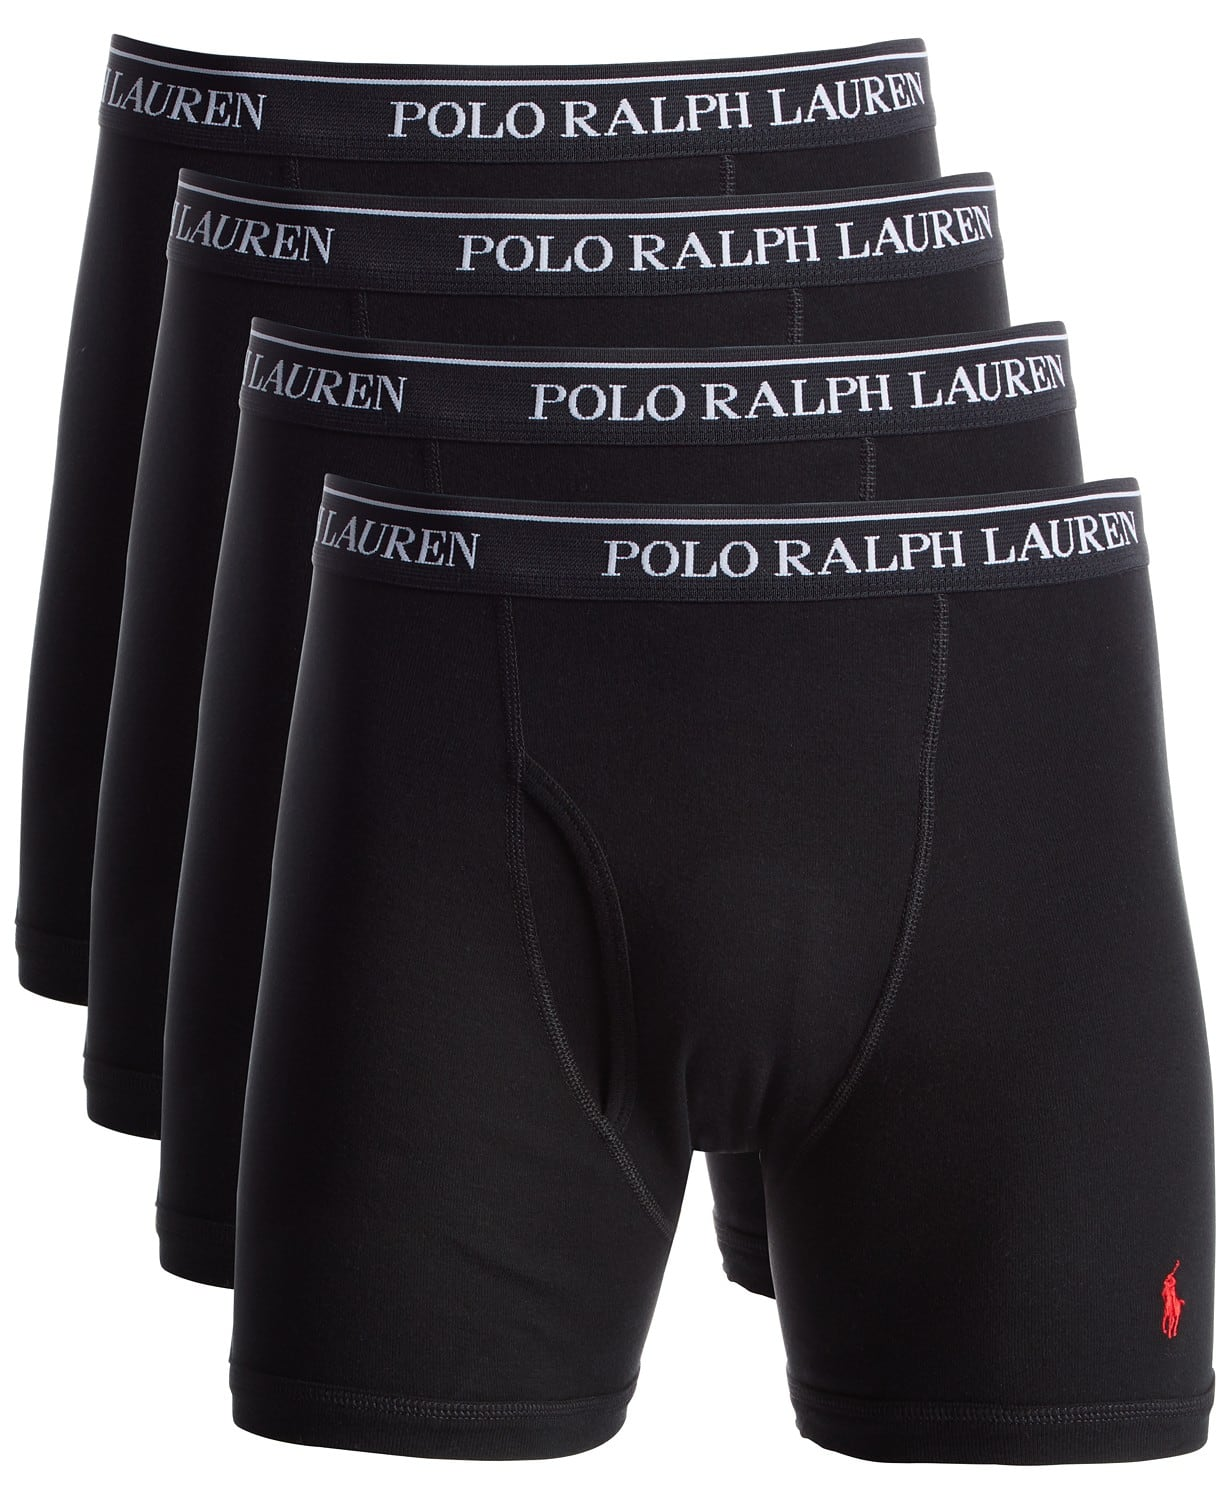 06e05d0f60a676 4-Pack Polo Ralph Lauren Men's Knit Cotton Boxer Briefs - Slickdeals.net